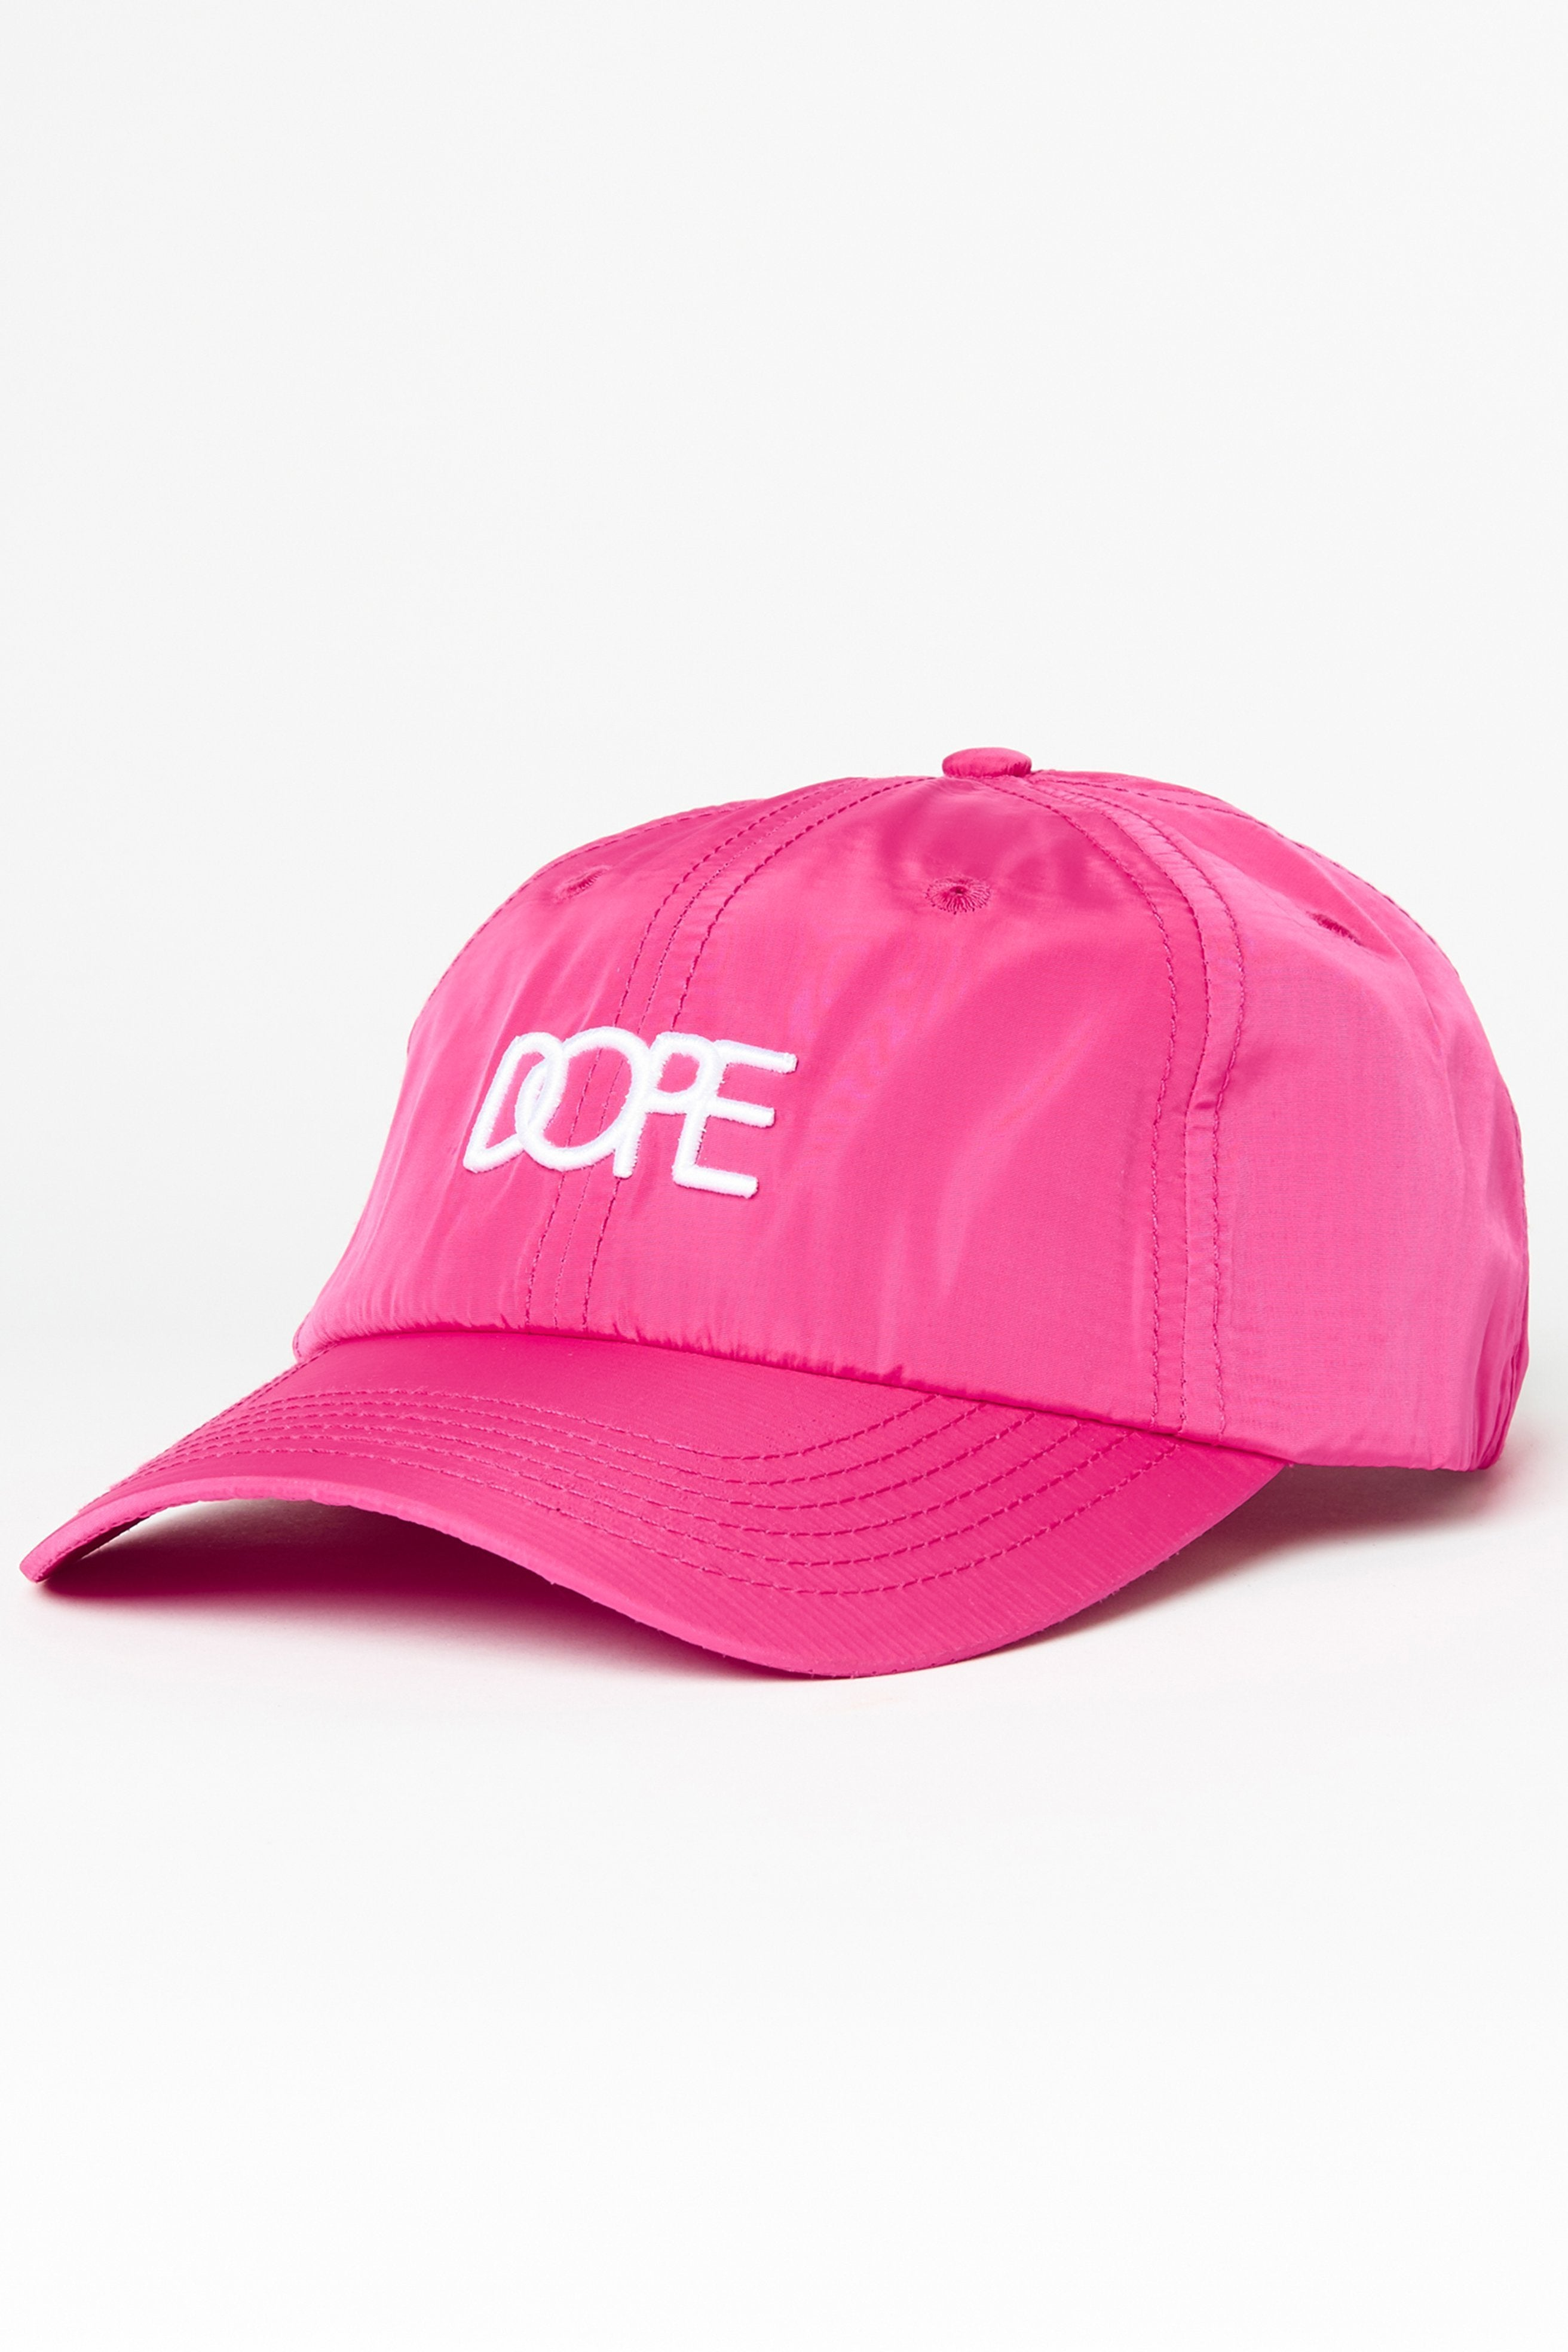 DOPE Core Dad Hat #Hot Pink